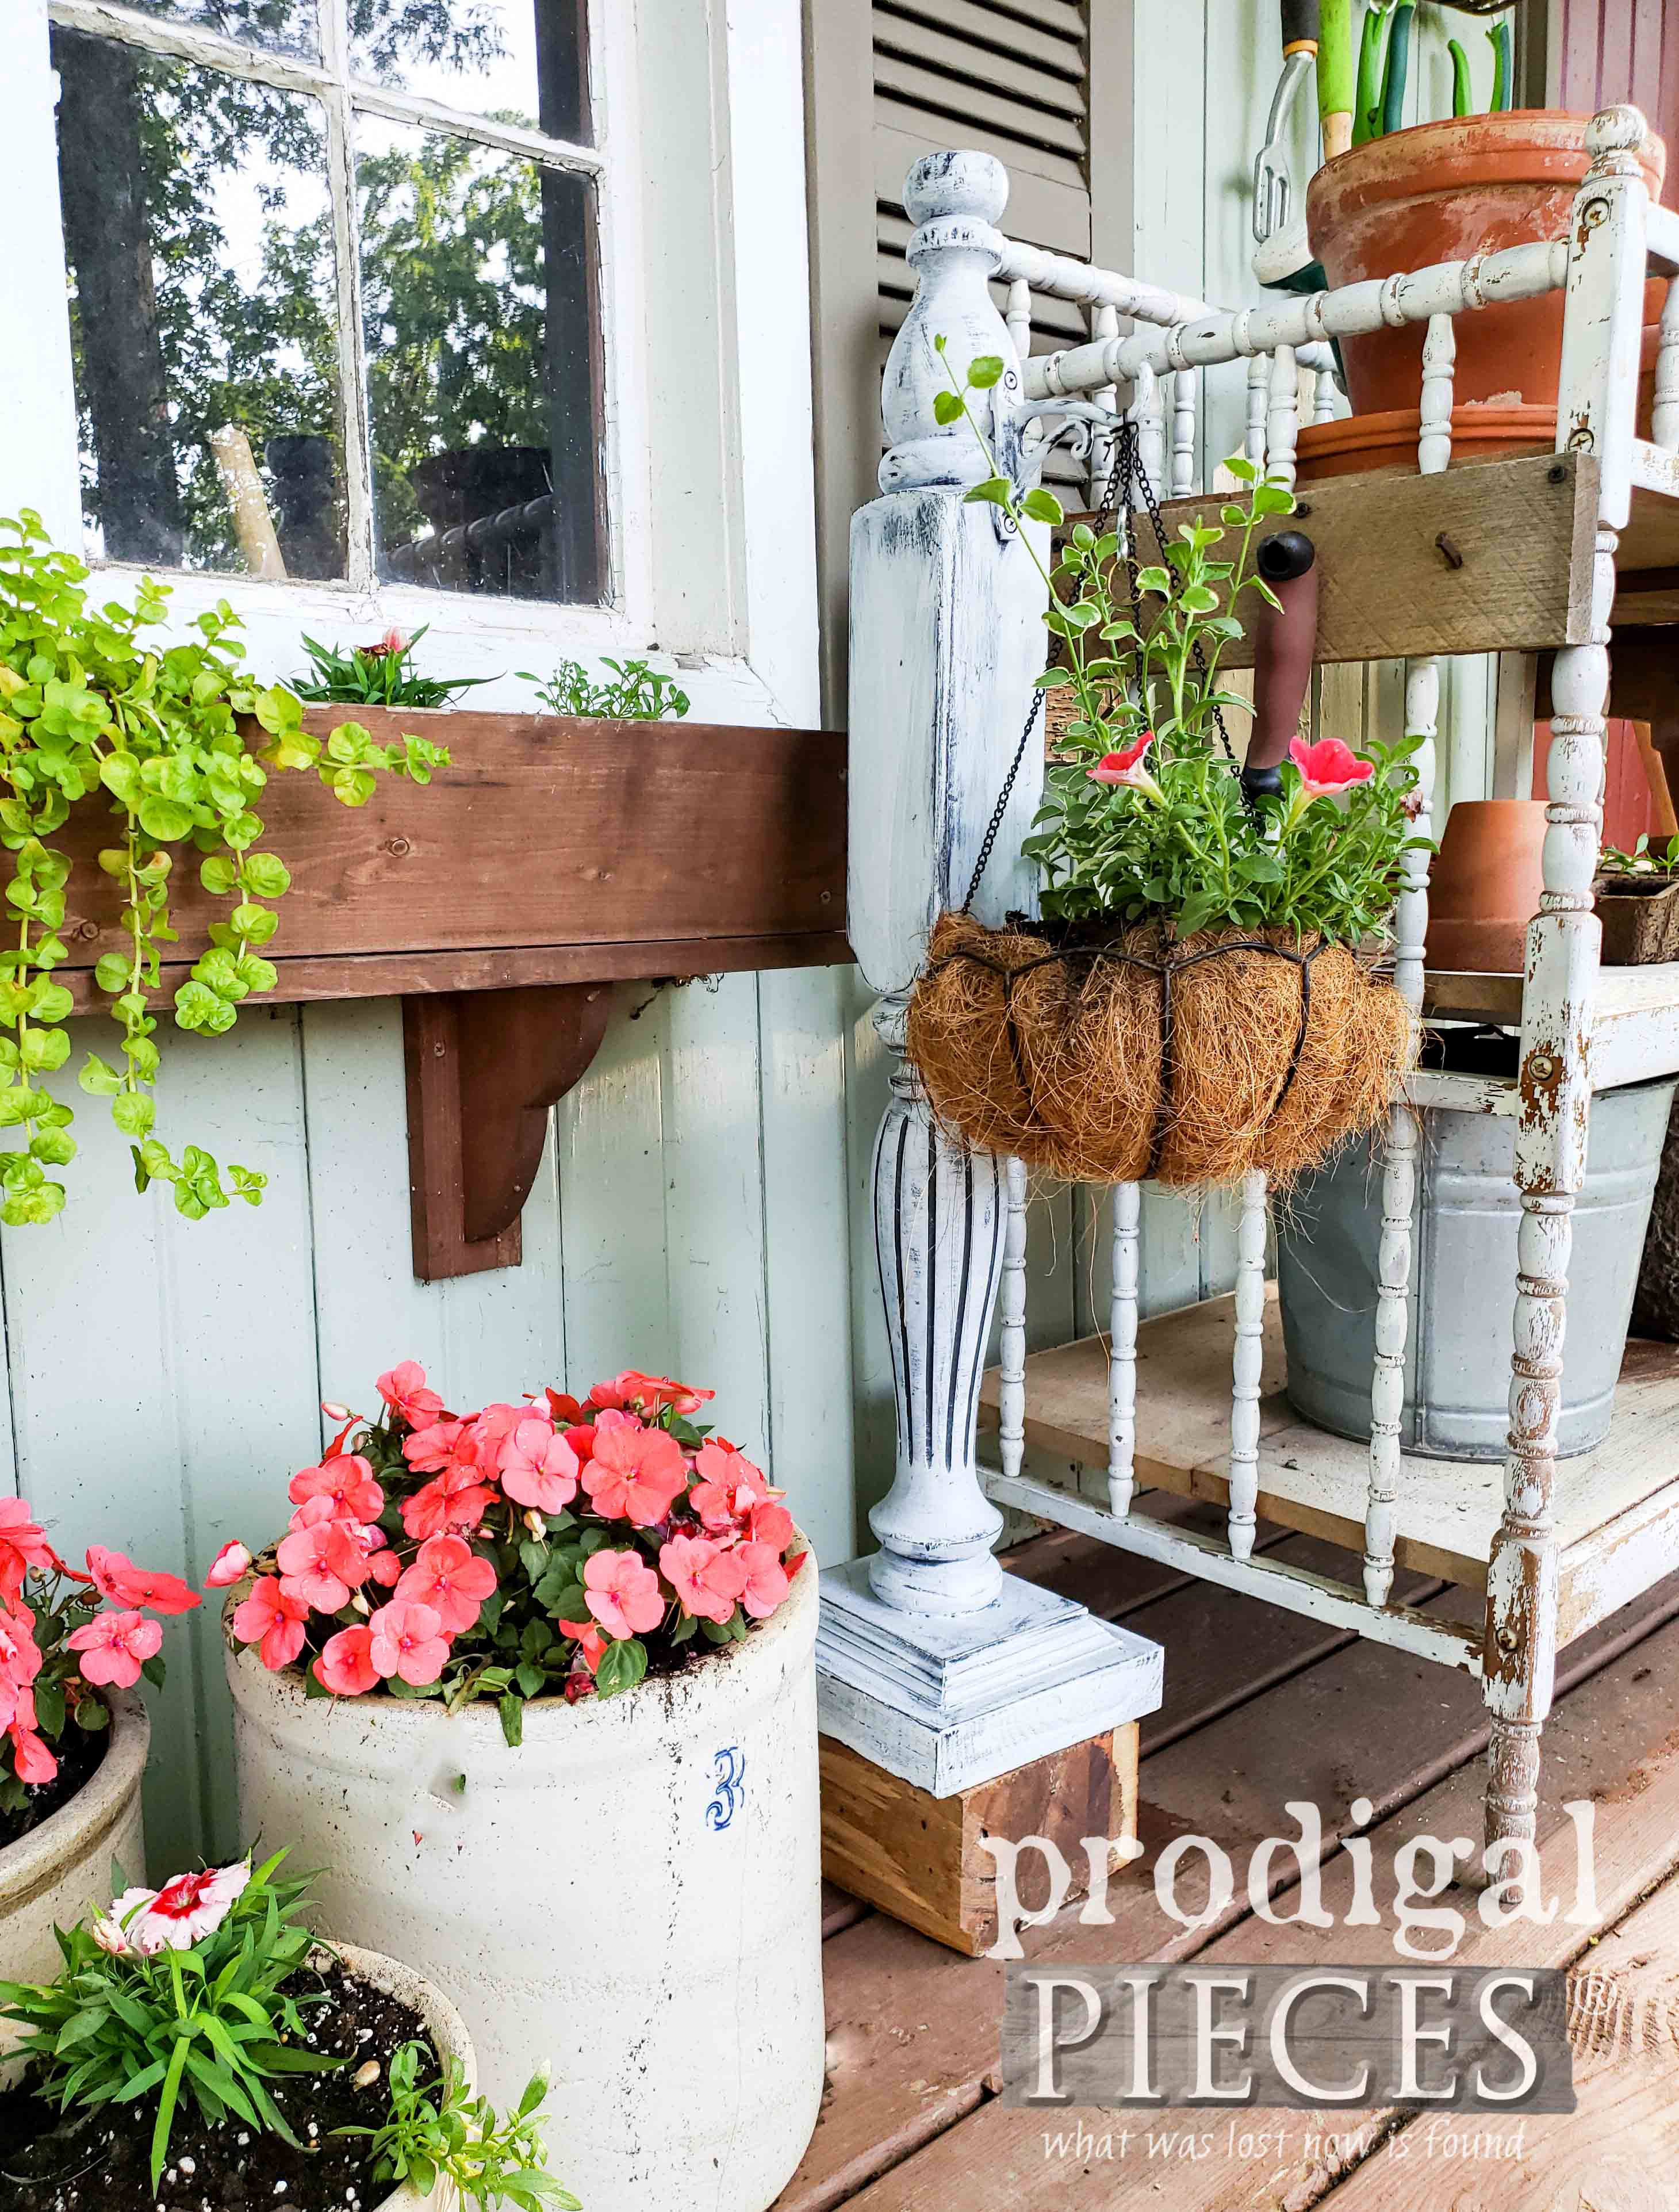 Repurposed Bed Post Garden Plant Hanger created by Larissa of Prodigal Pieces | DIY tutorial at prodigalpieces.com #prodigalpieces #home #garden #homedecor #diy #farmhouse